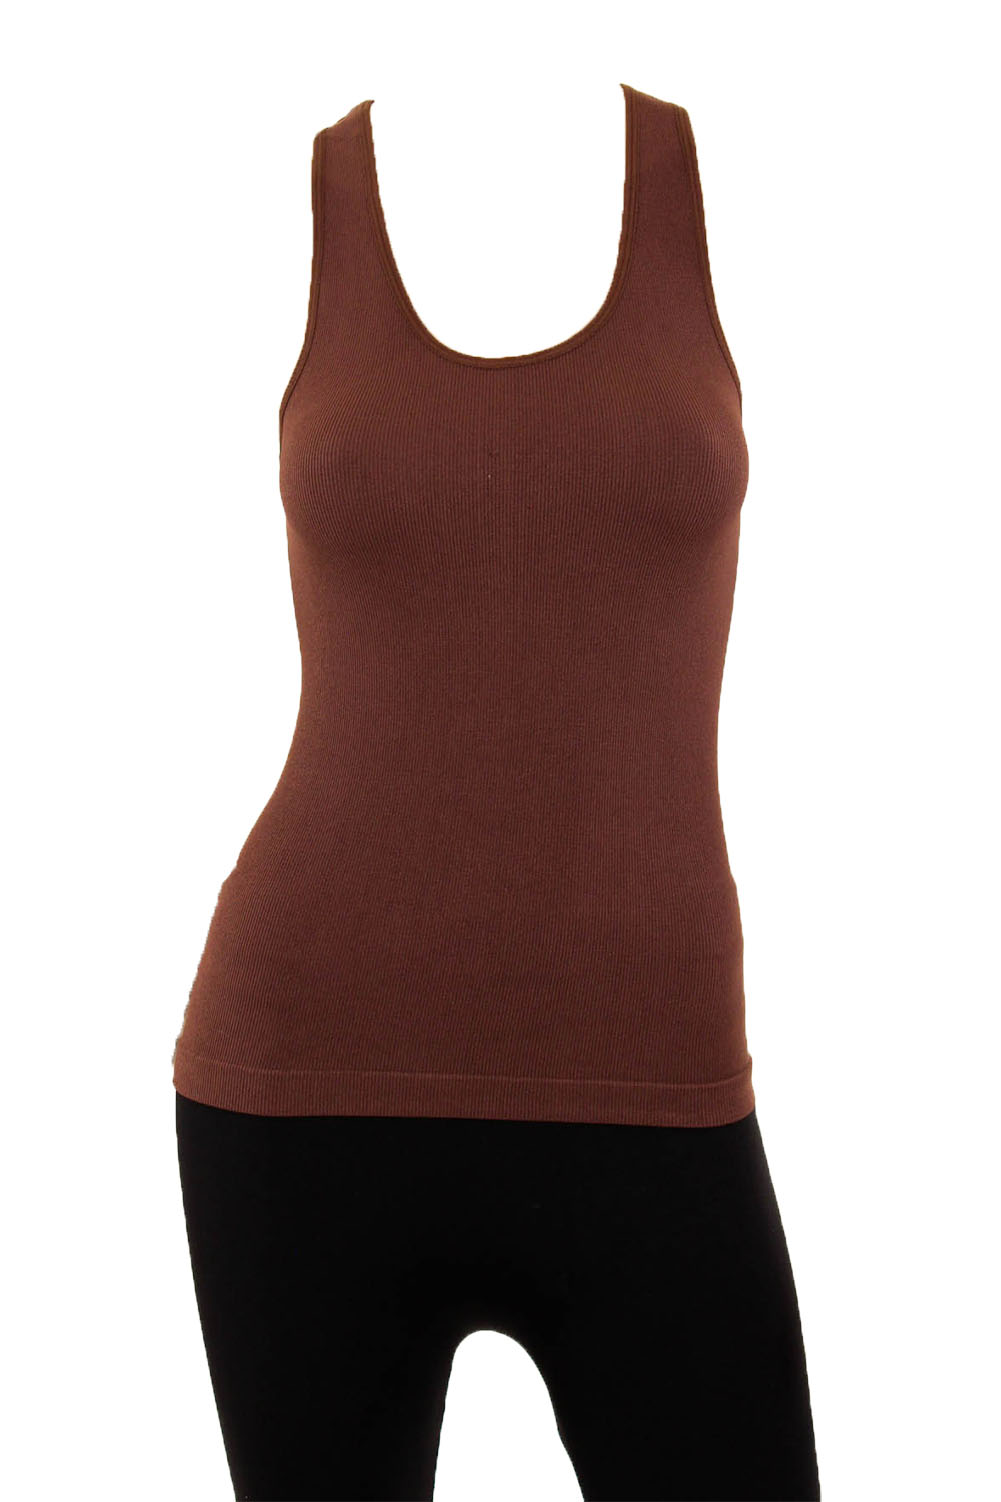 Musa Women's Ribbed Racerback Stretch Tank Top